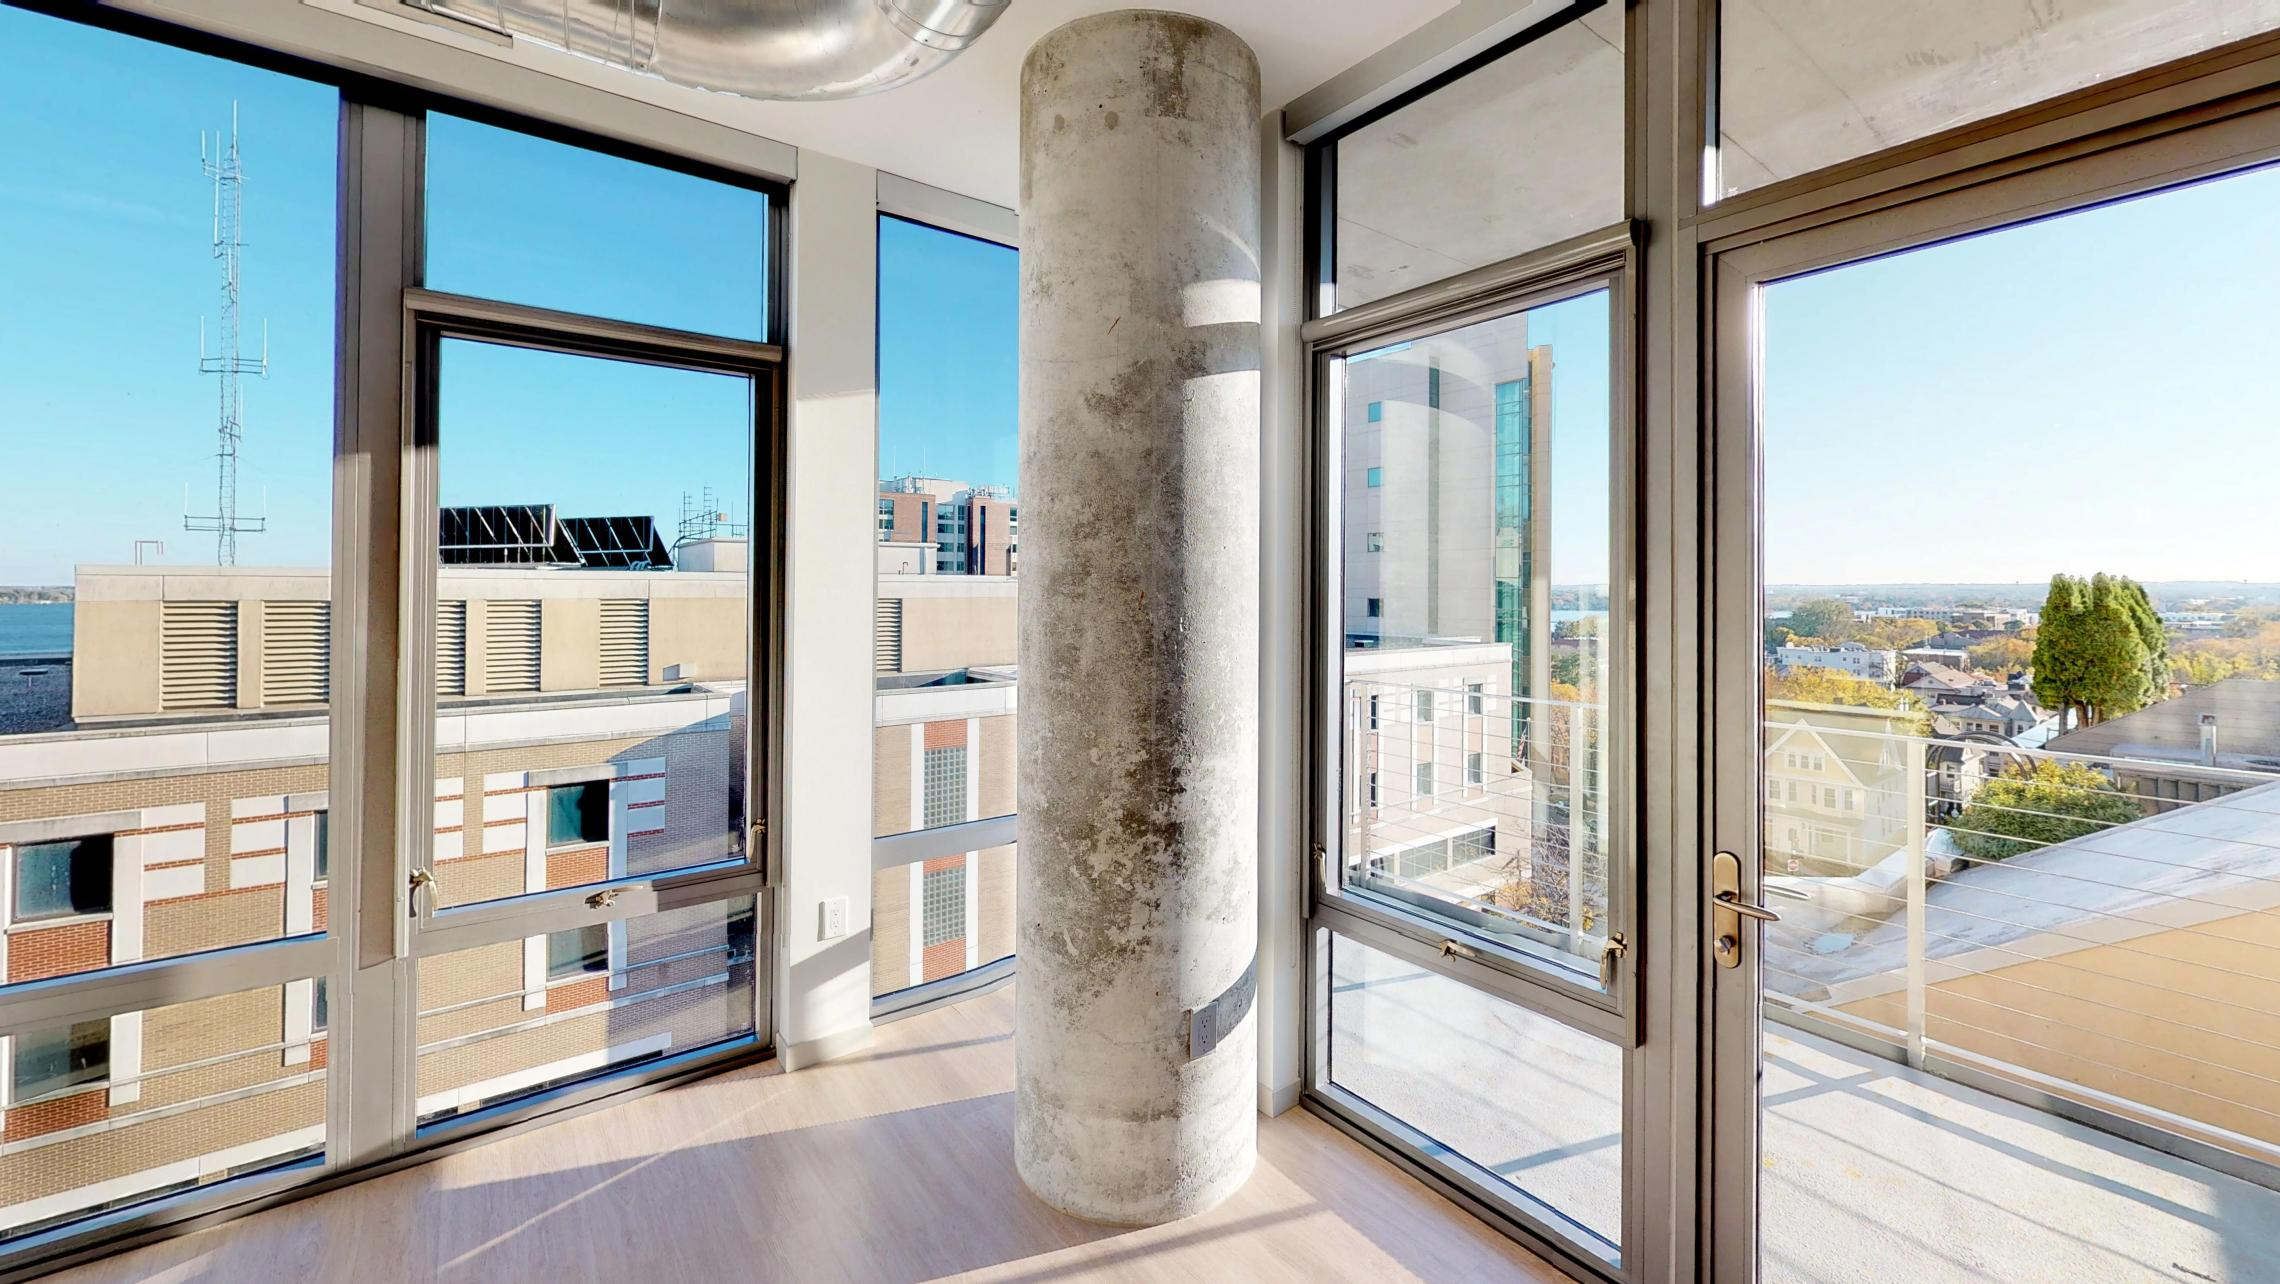 The-Pressman-Apartment-513-One-Bedroom-Living-Room-View-Kitchen-Island-Downtown-Madison-Capitol-Balcony-Views.jpg